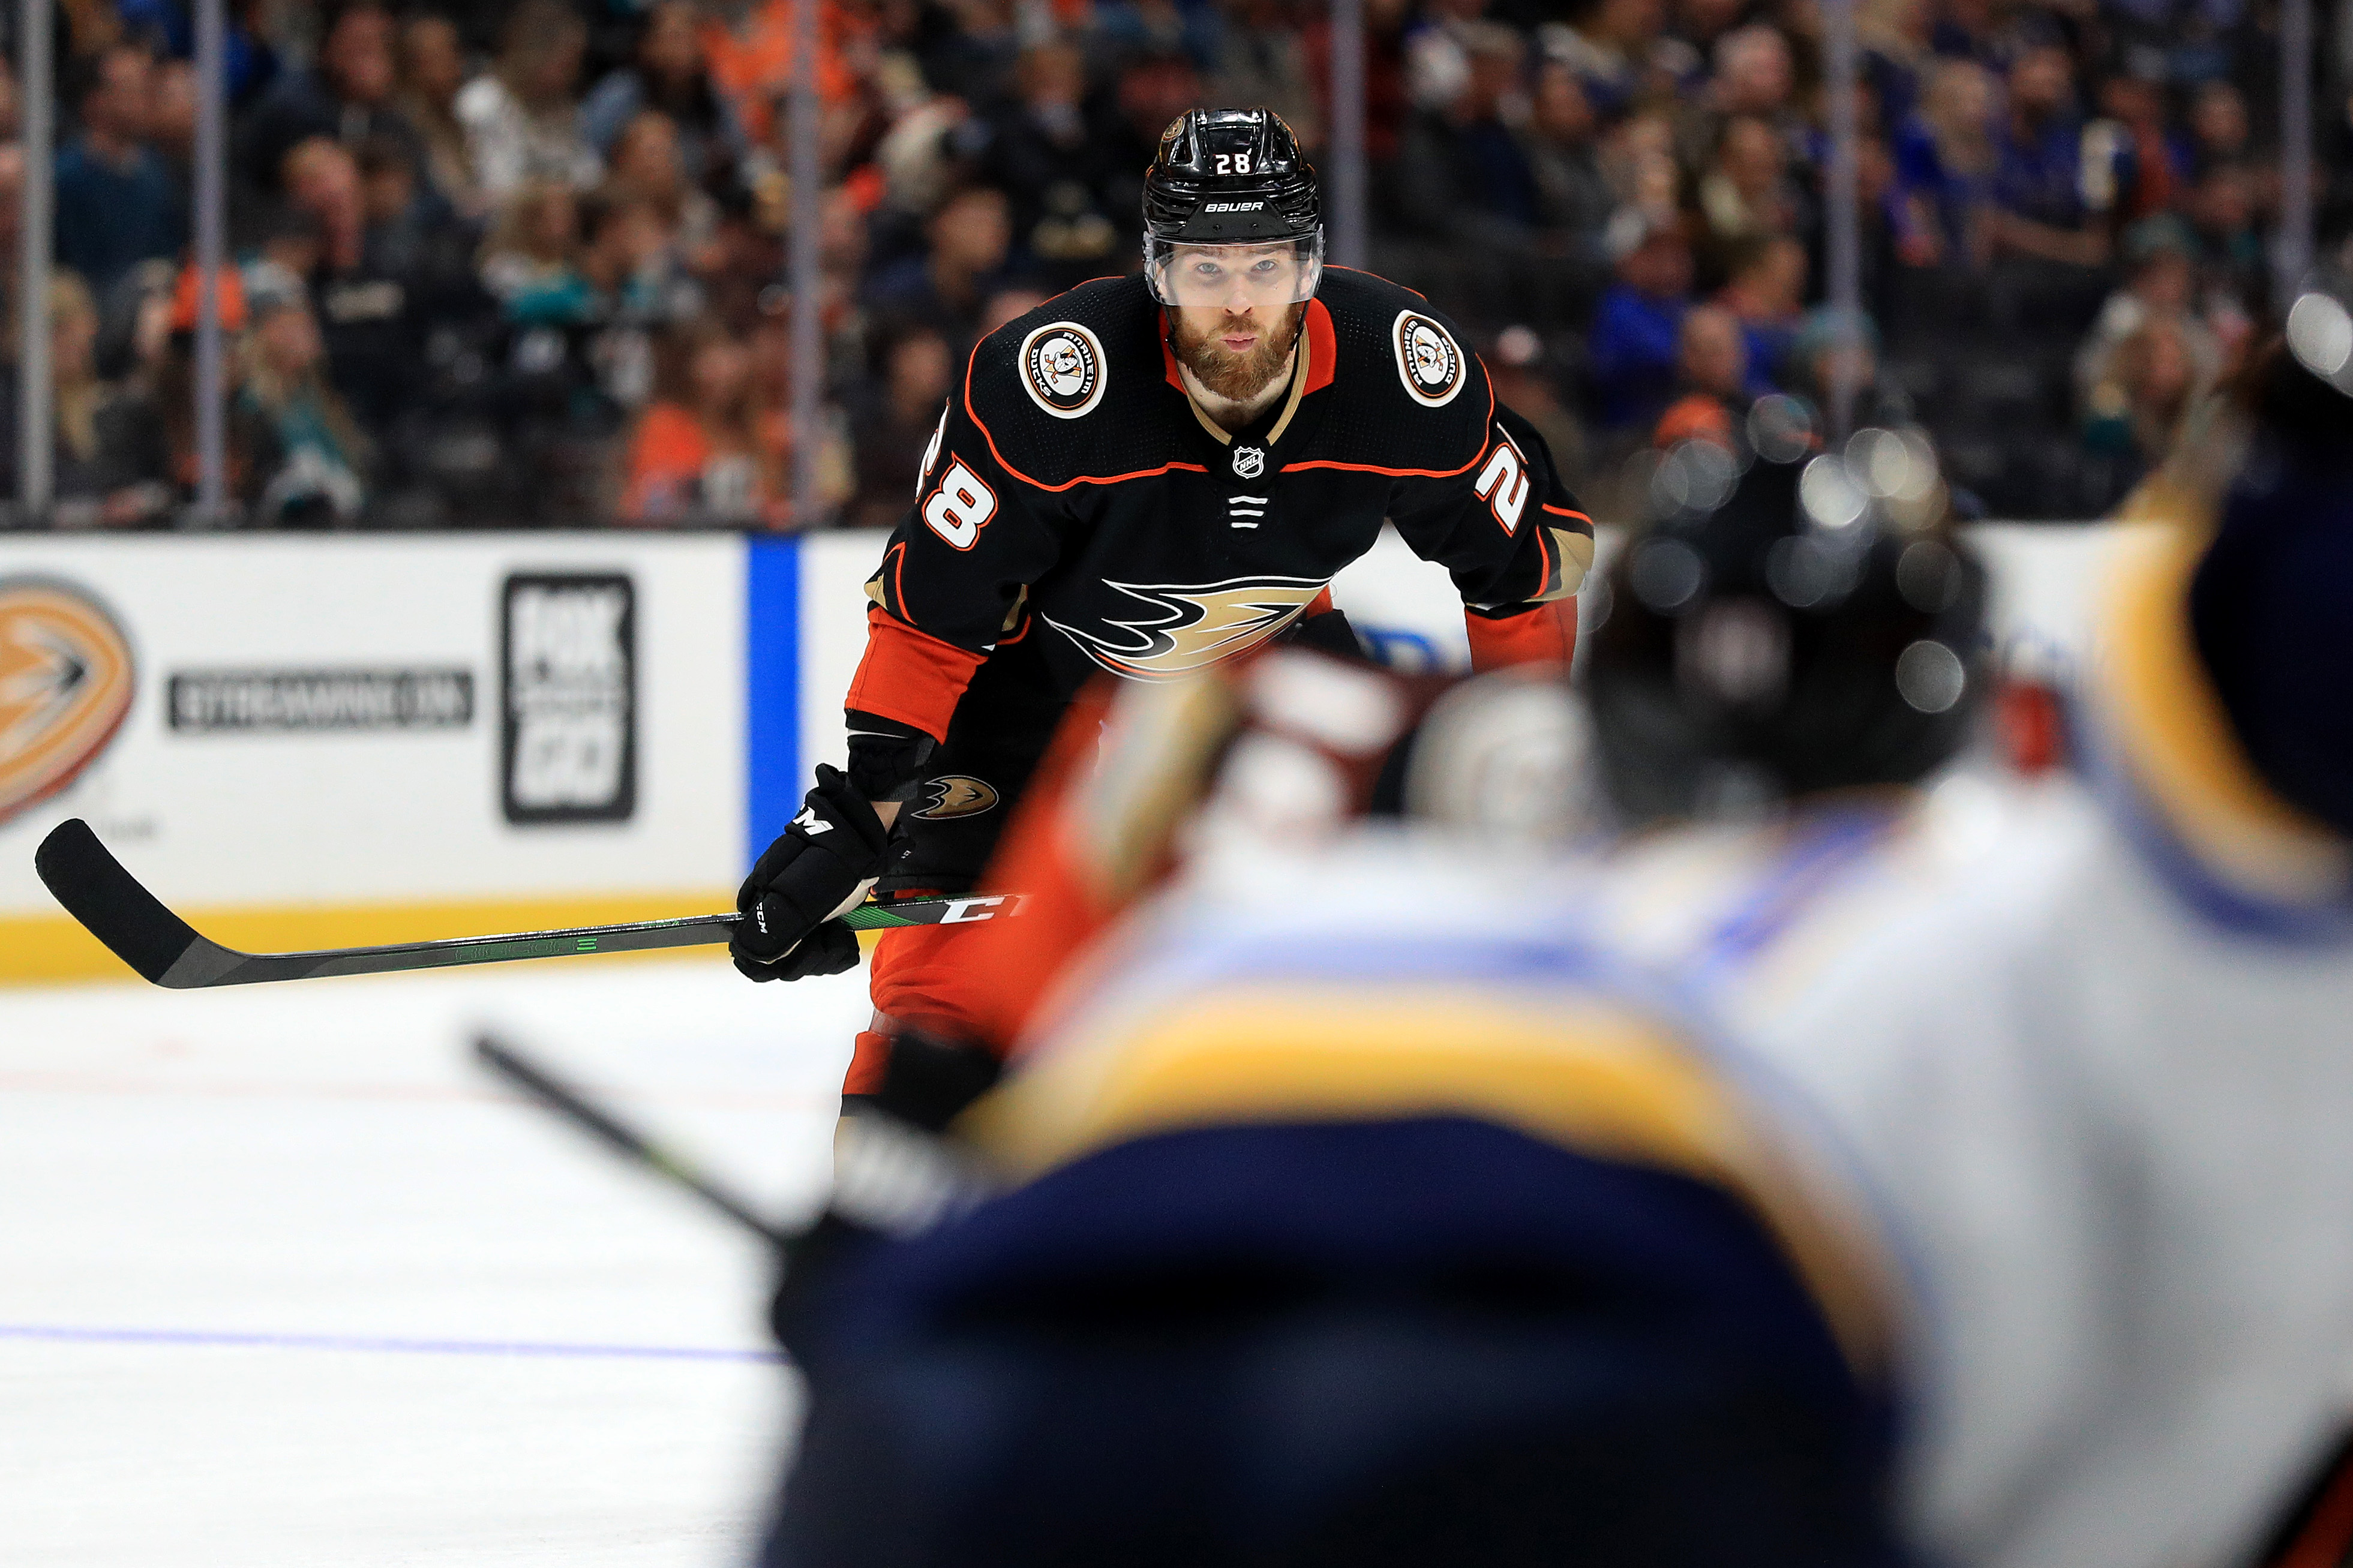 ANAHEIM, CALIFORNIA - MARCH 11: Jani Hakanpaa #28 of the Anaheim Ducks looks on during the second period of a game against the St. Louis Blues at Honda Center on March 11, 2020 in Anaheim, California.